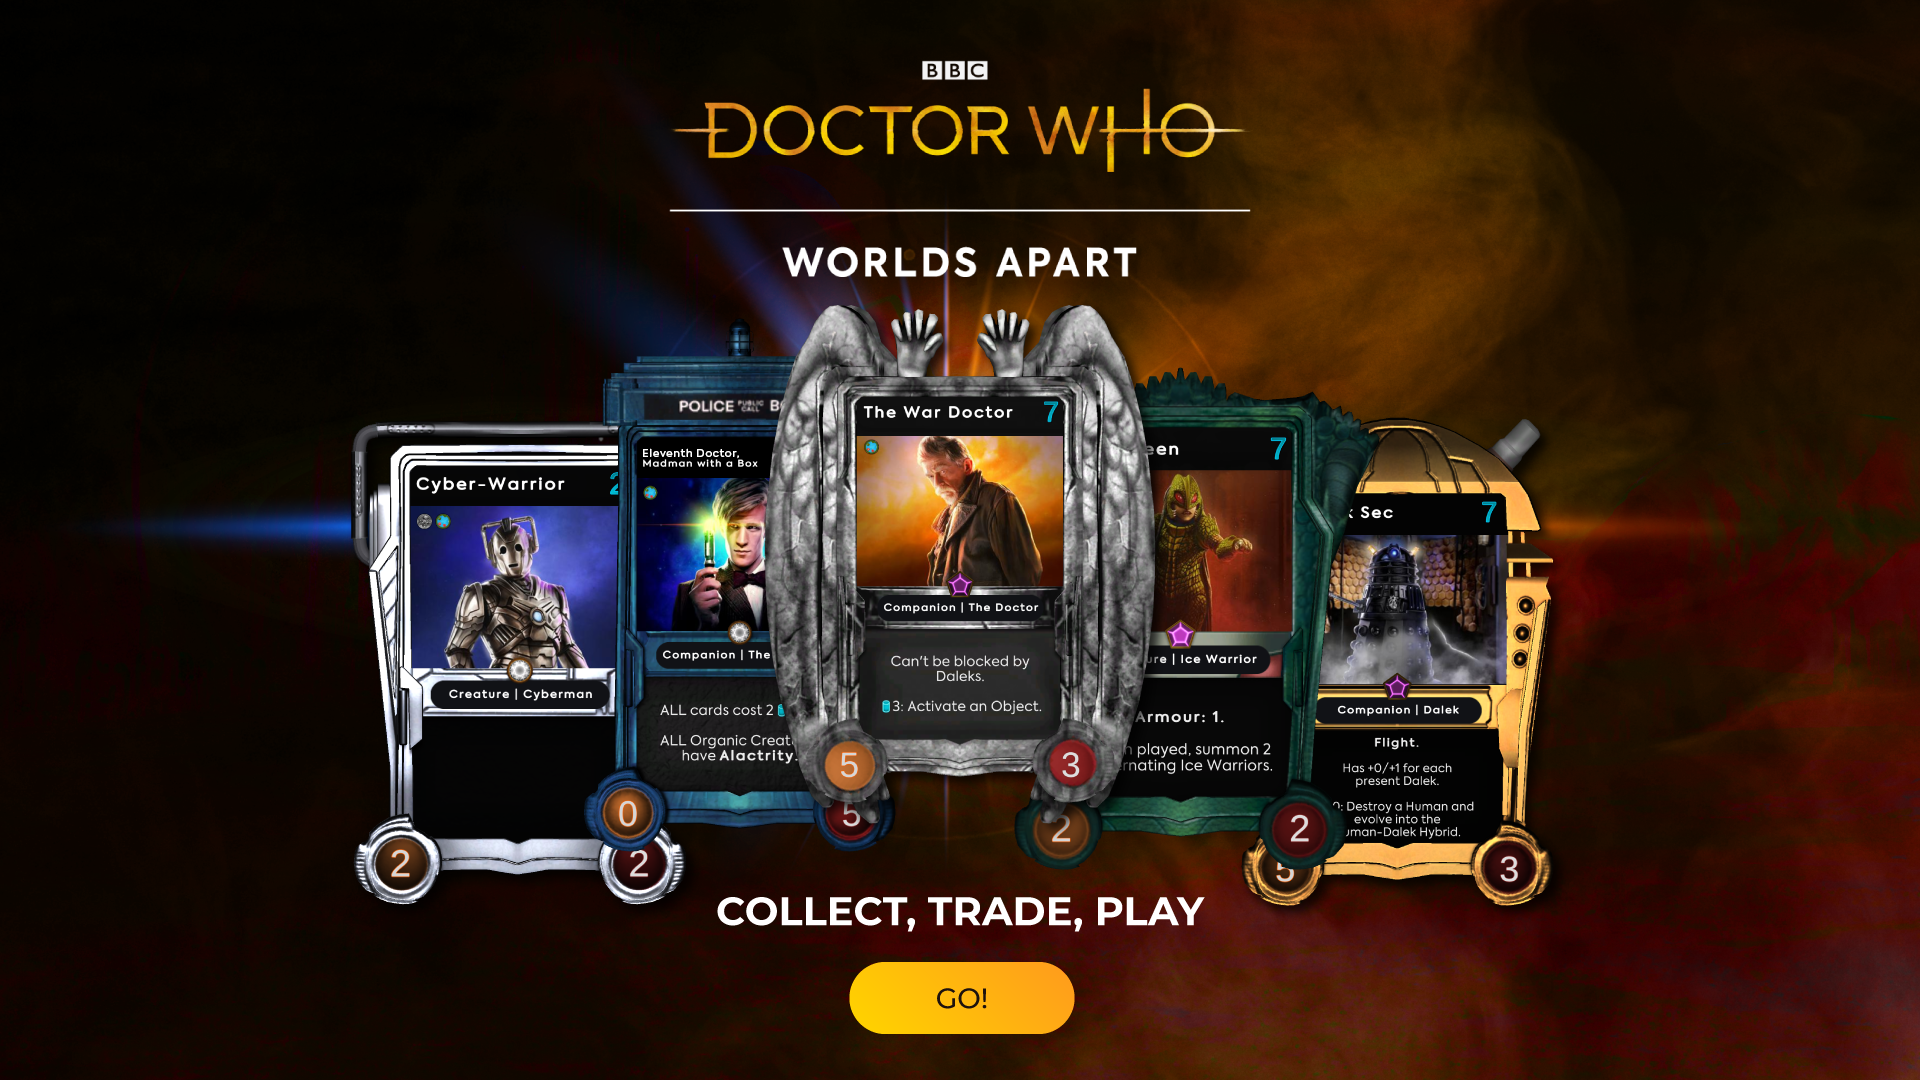 2 entertain doctor who releases bitcoins sport betting calculator